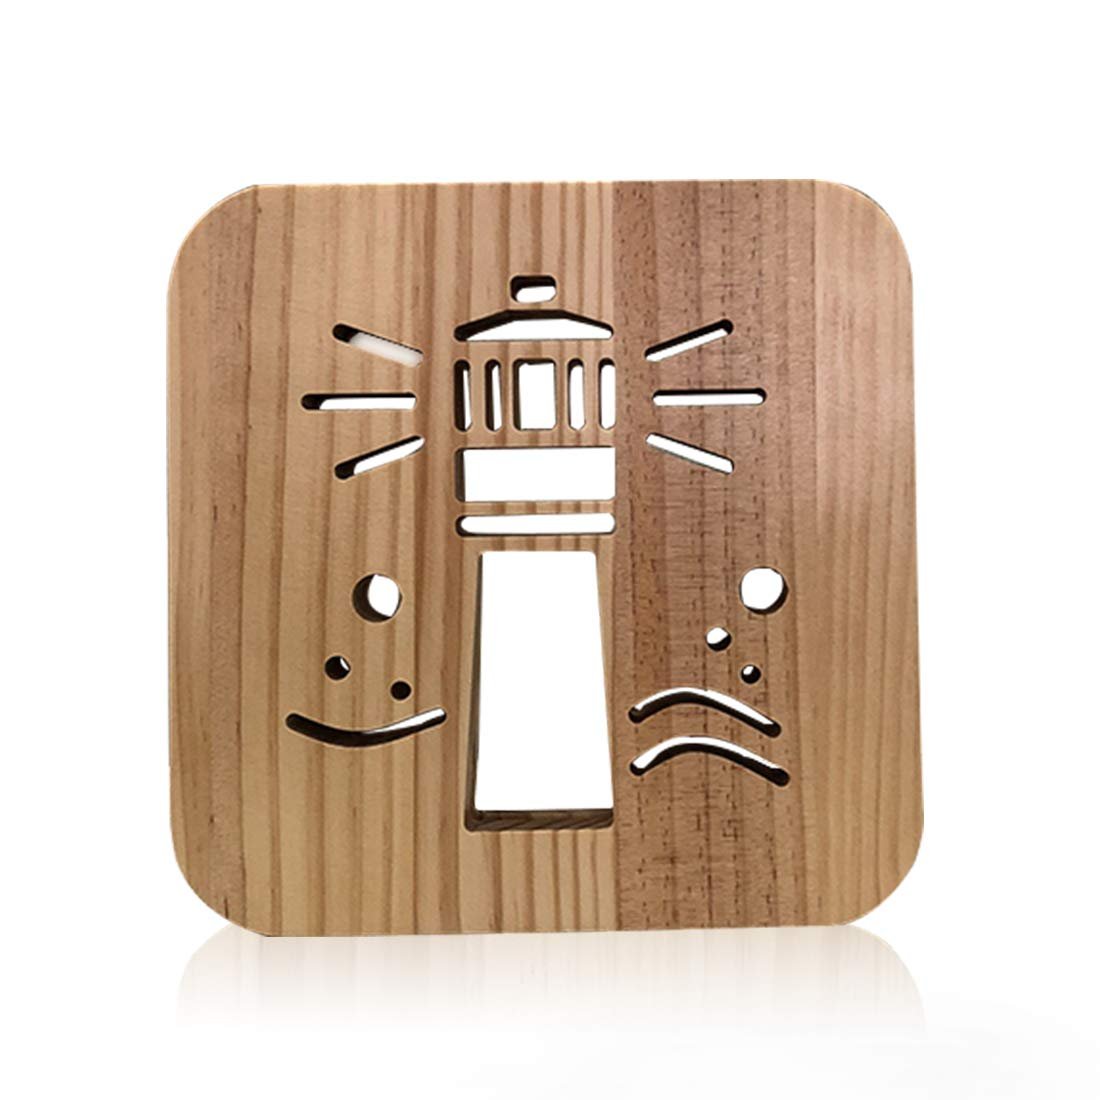 Wooden Lighthouse Led Lamp for Children, LeKong 3D Wooden Carving Patterns, USB Plug in, Gift for Birthday & Friendship, Fit for Halloween & Christmas Decoration, 2018 New by LeKong (Image #1)